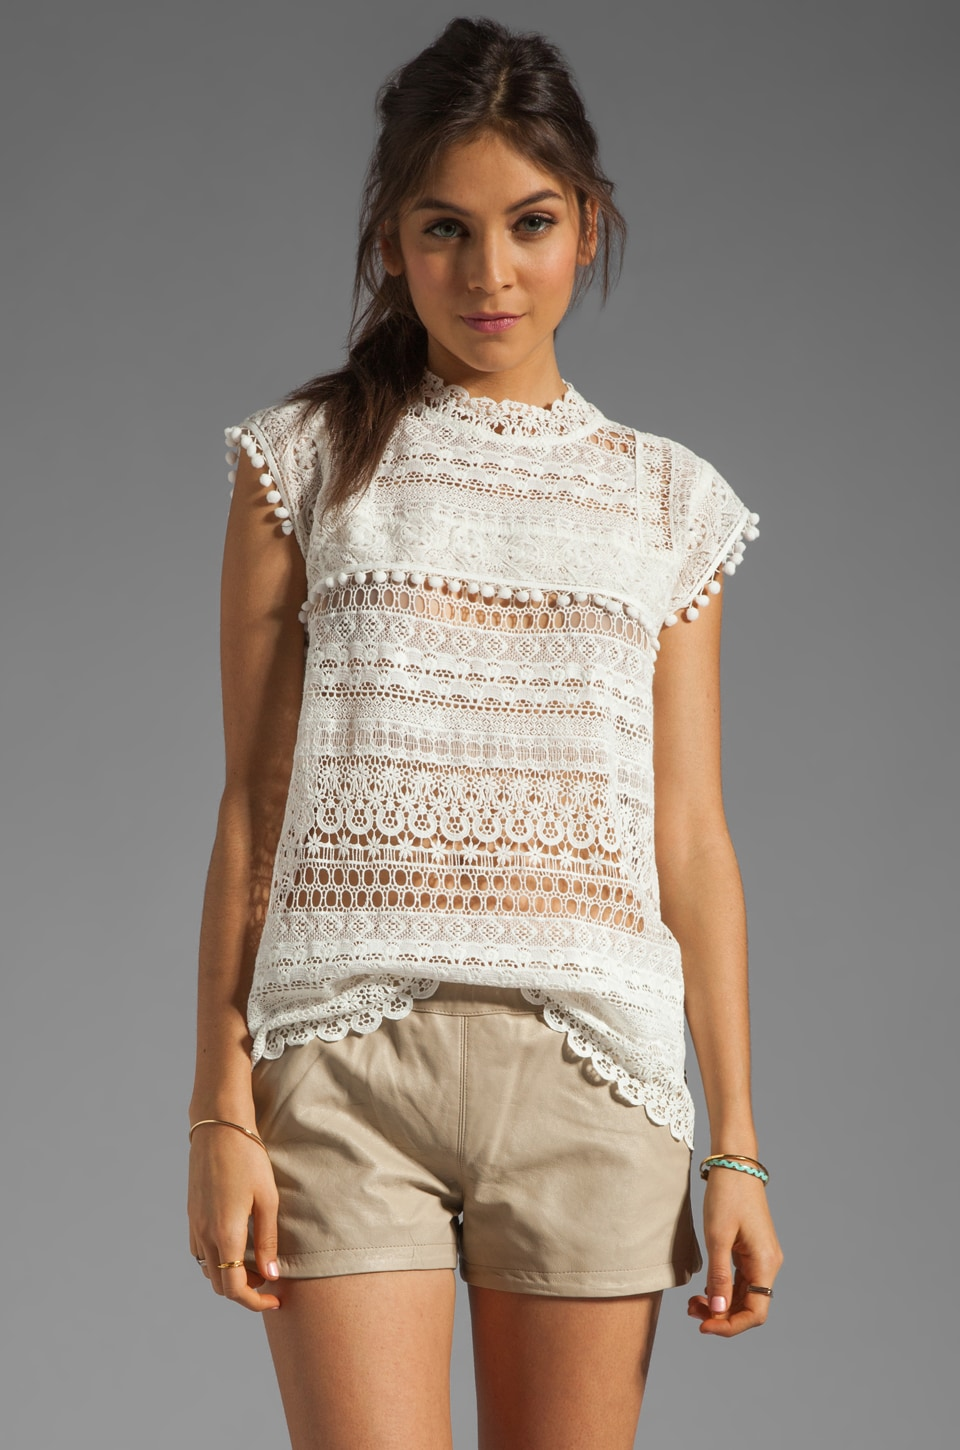 Maison Scotch Lace Turtleneck Top in Cream